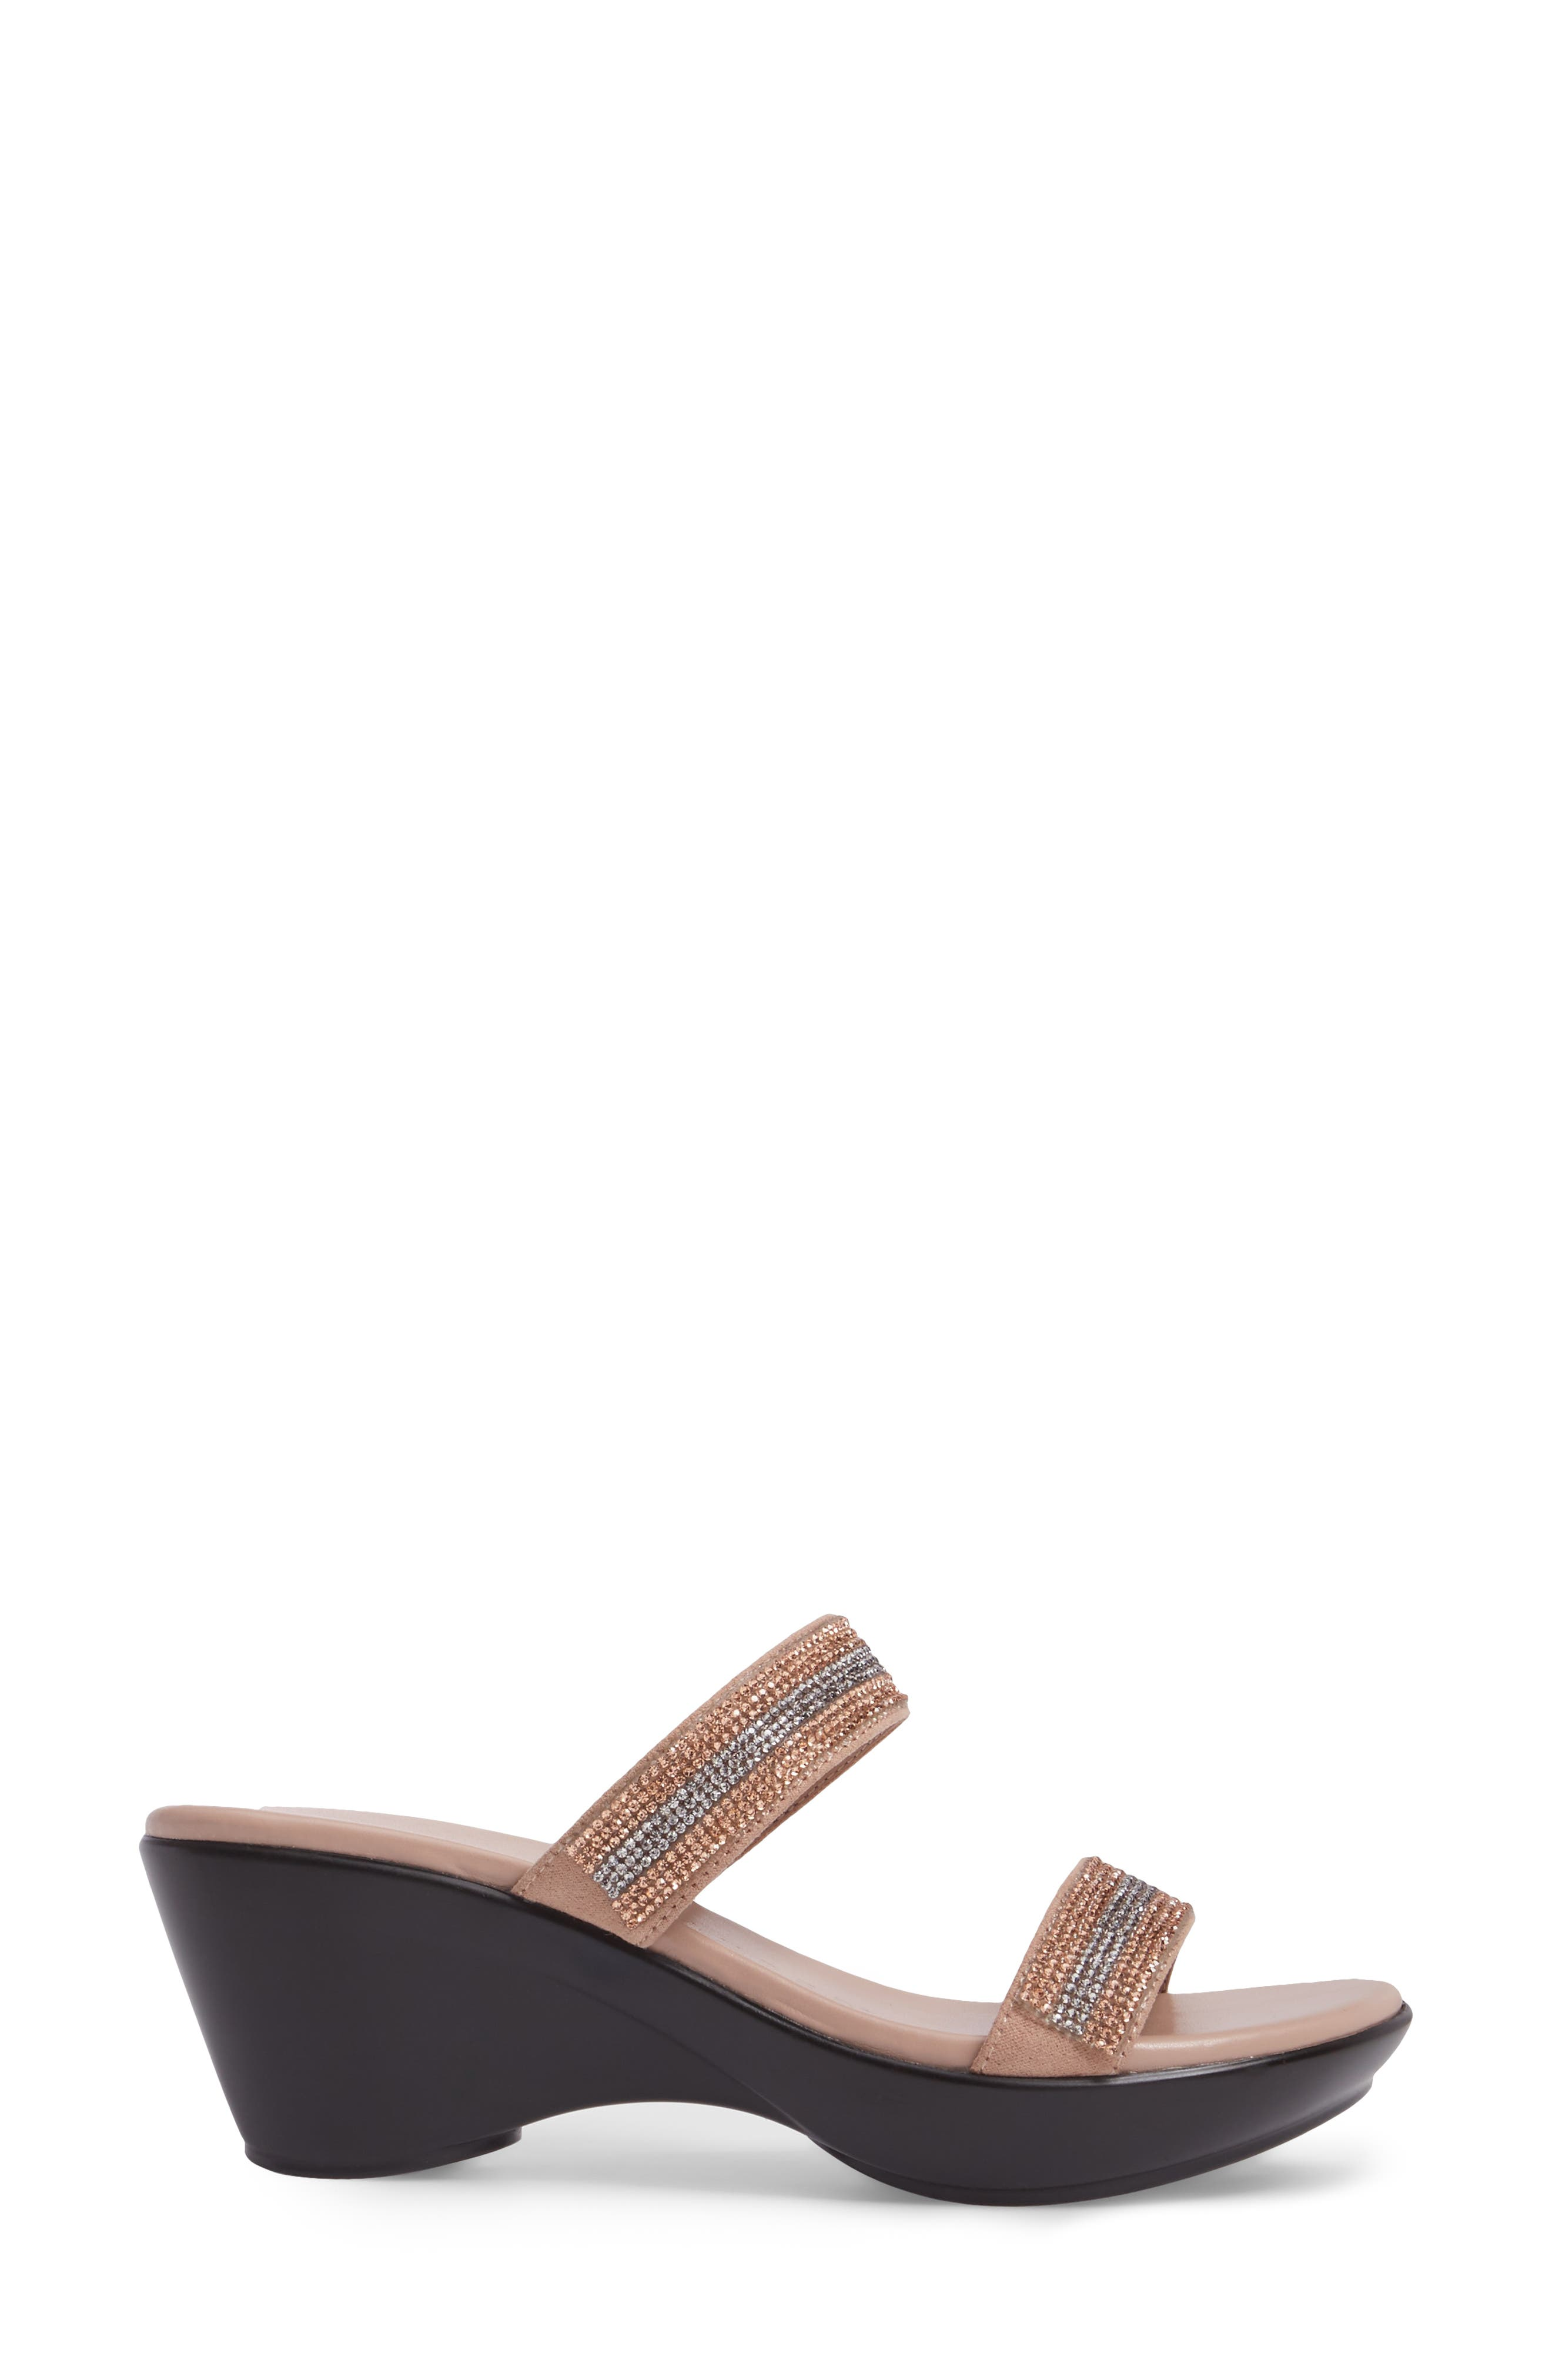 Arlo Wedge Sandal,                             Alternate thumbnail 3, color,                             Rose Gold Synthetic